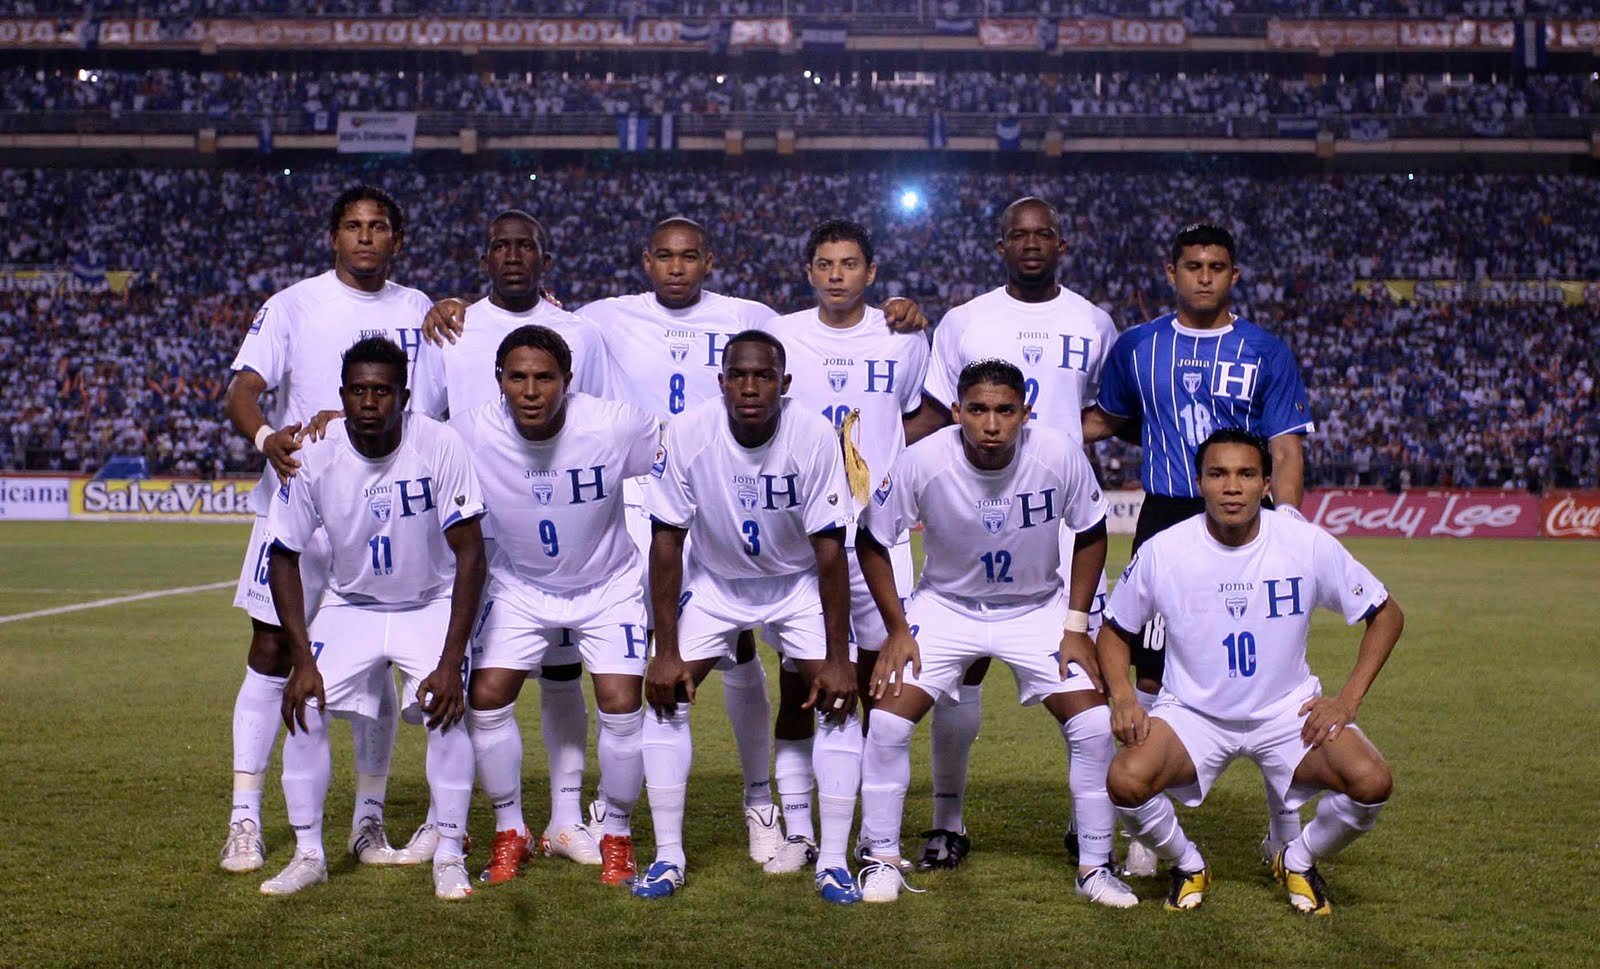 World Cup 2010 South Africa: Honduras Team Profile World Cup 2010